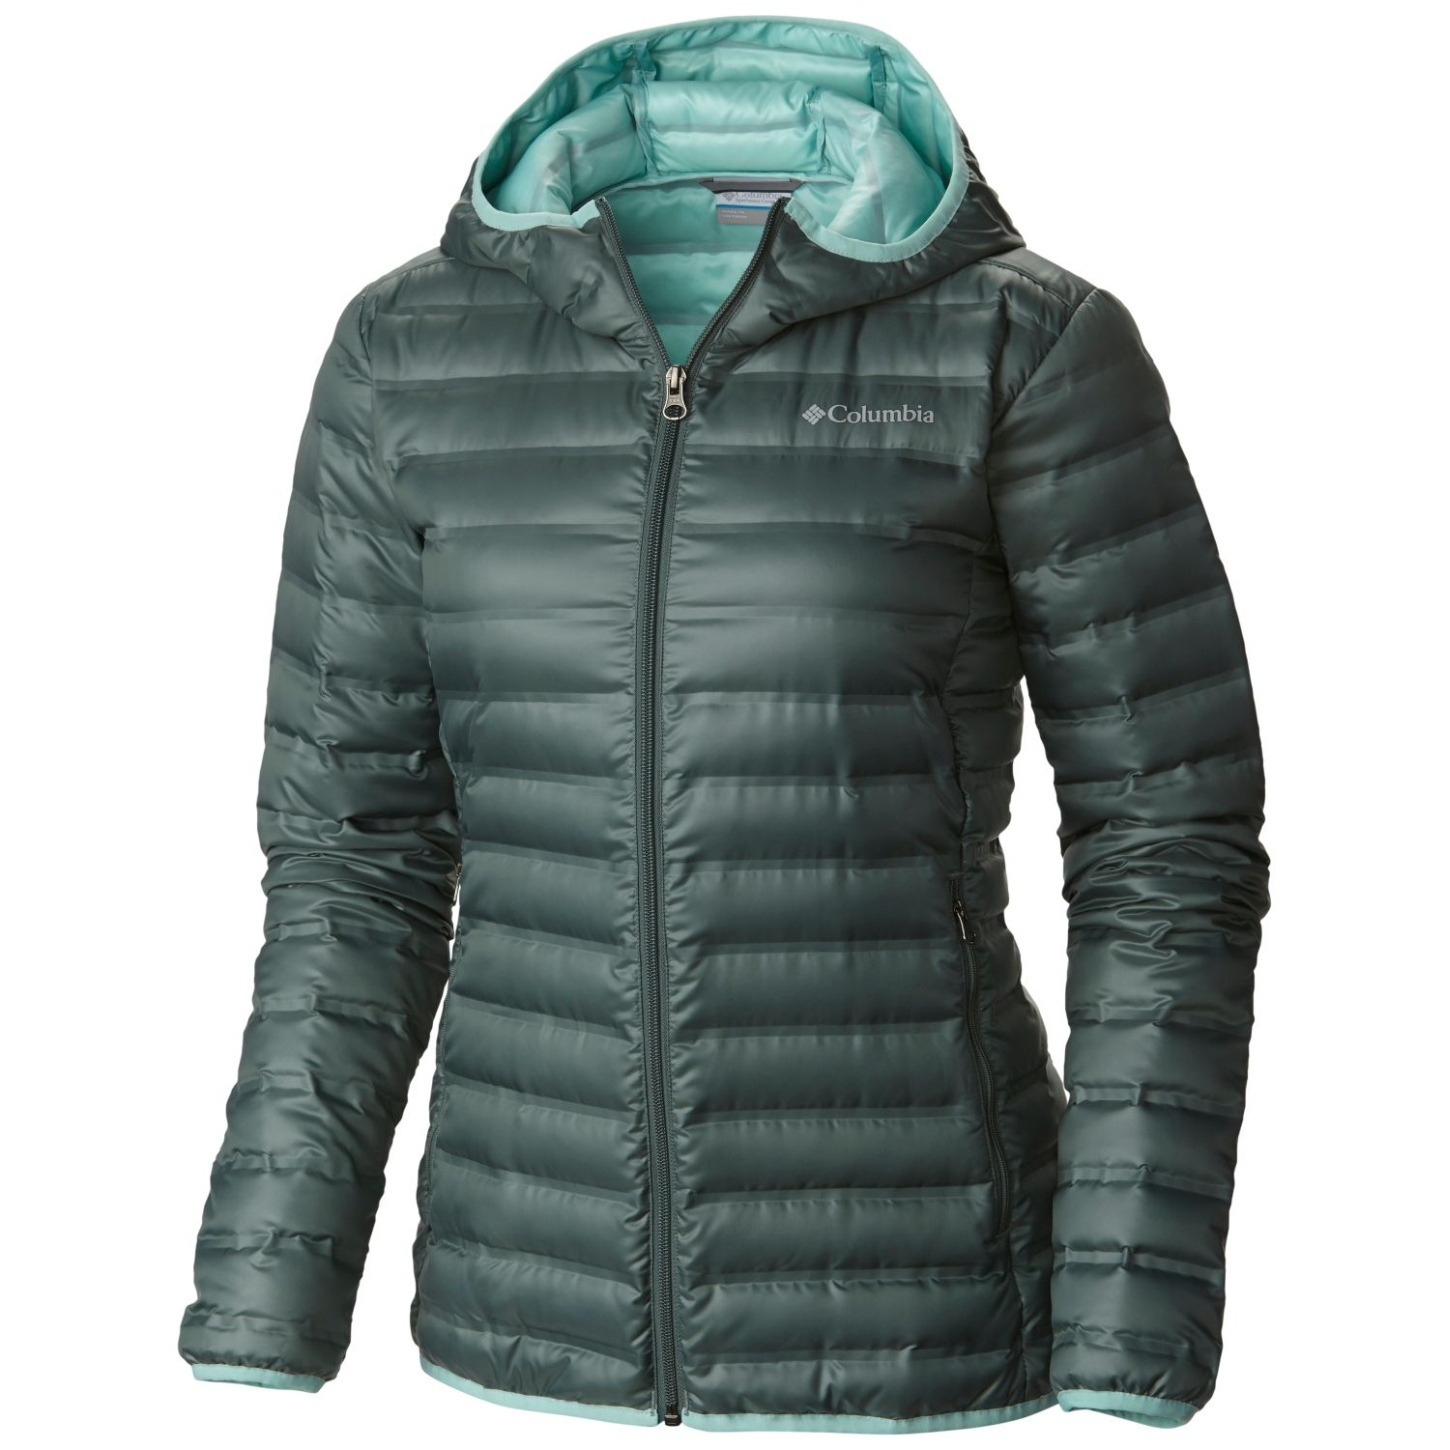 Columbia Flash Forward Daunenjacke mit Kapuze für Damen Pond, Spray-30